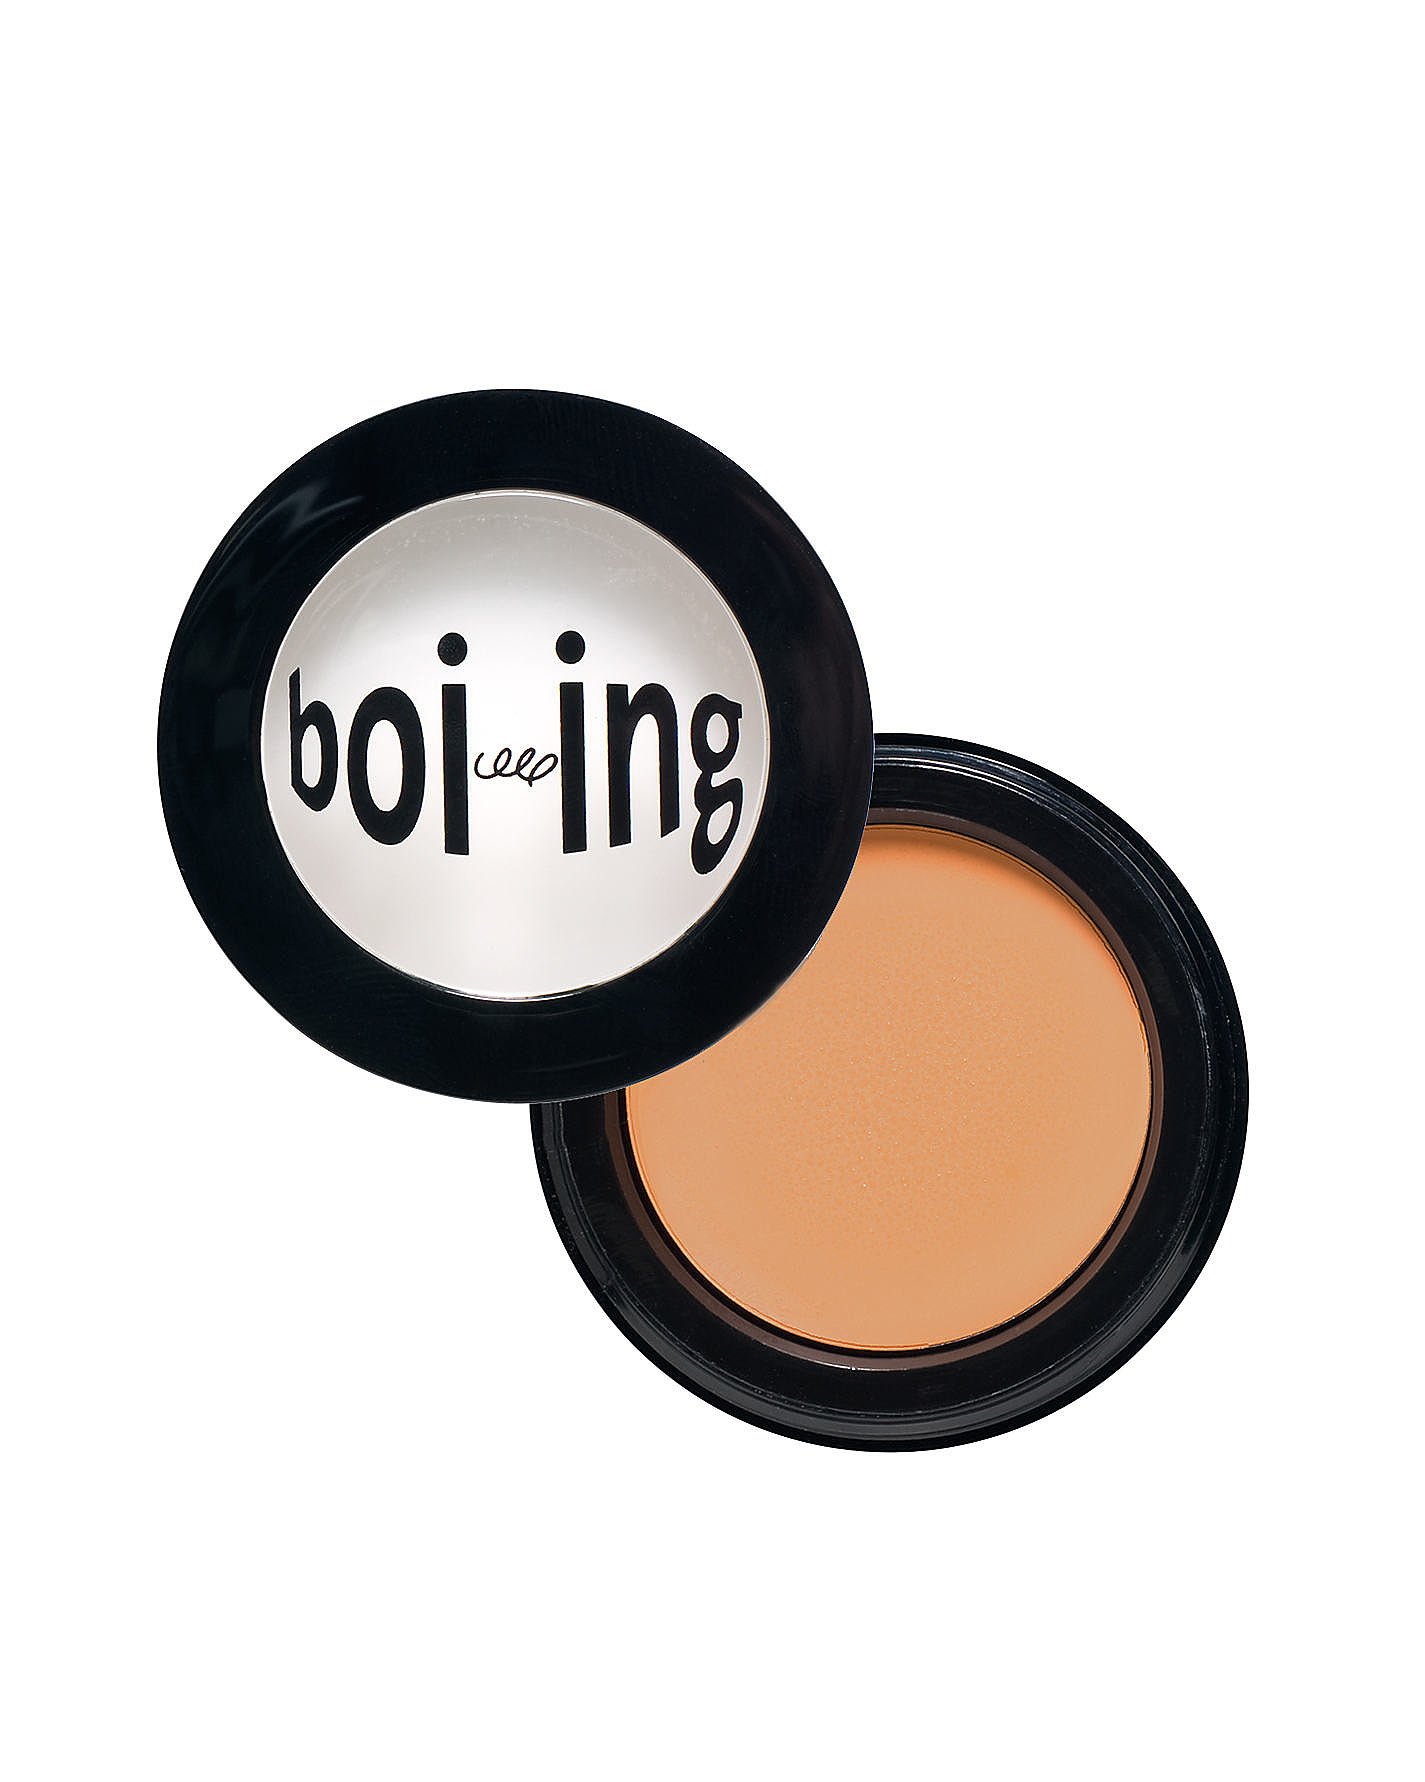 big-day-beauty-awards-benefit-cosmetics-boing-concealer-0216.jpg